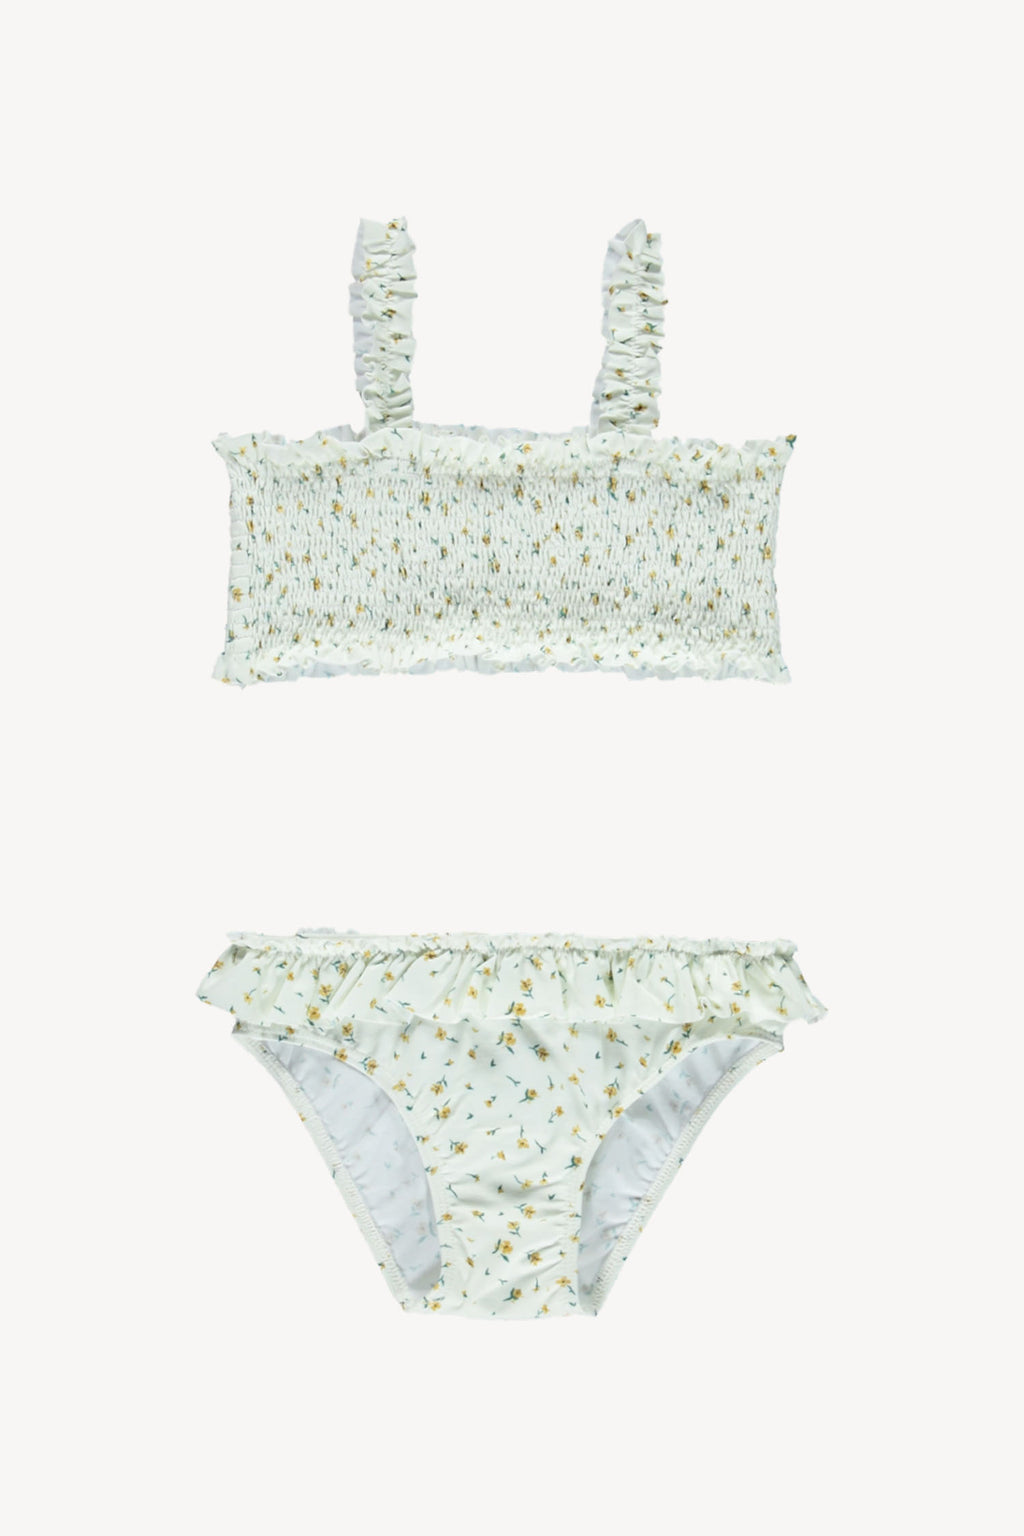 Fin and Vince - Smocked Bikini (Chamomile)